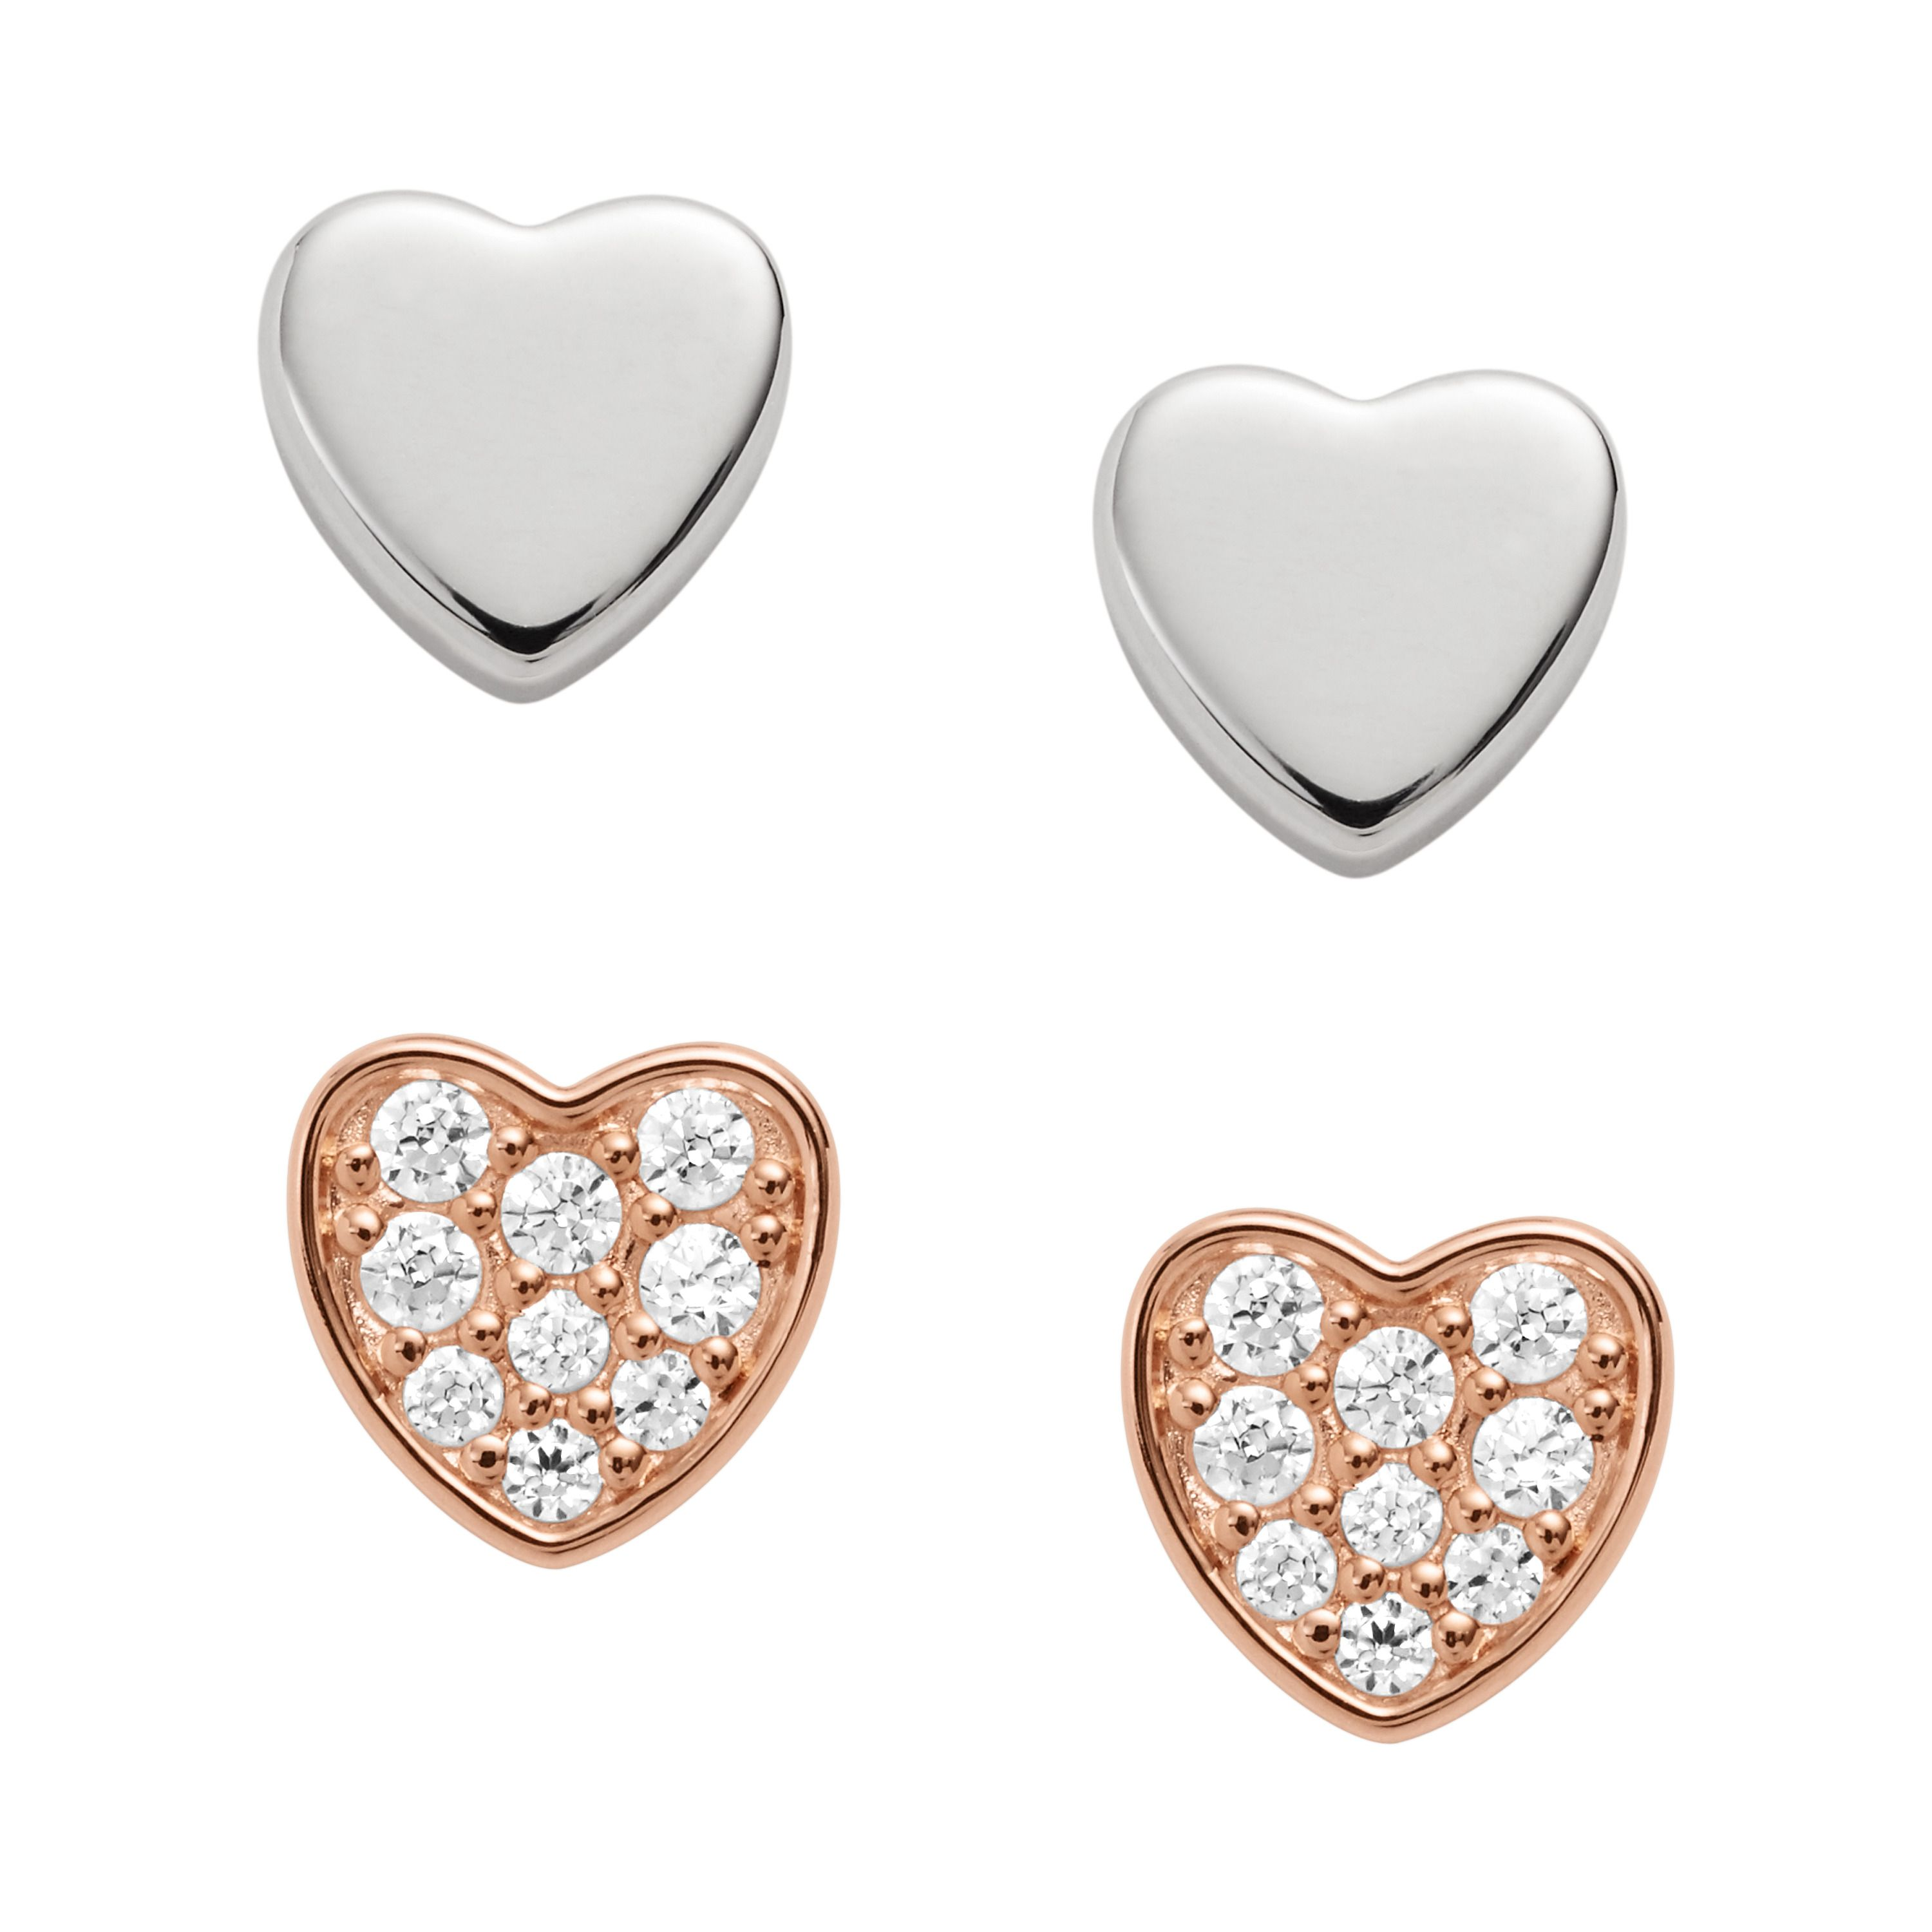 Fossil Duo Heart Two-Tone Sterling Silver Studs, Silver Silverlic